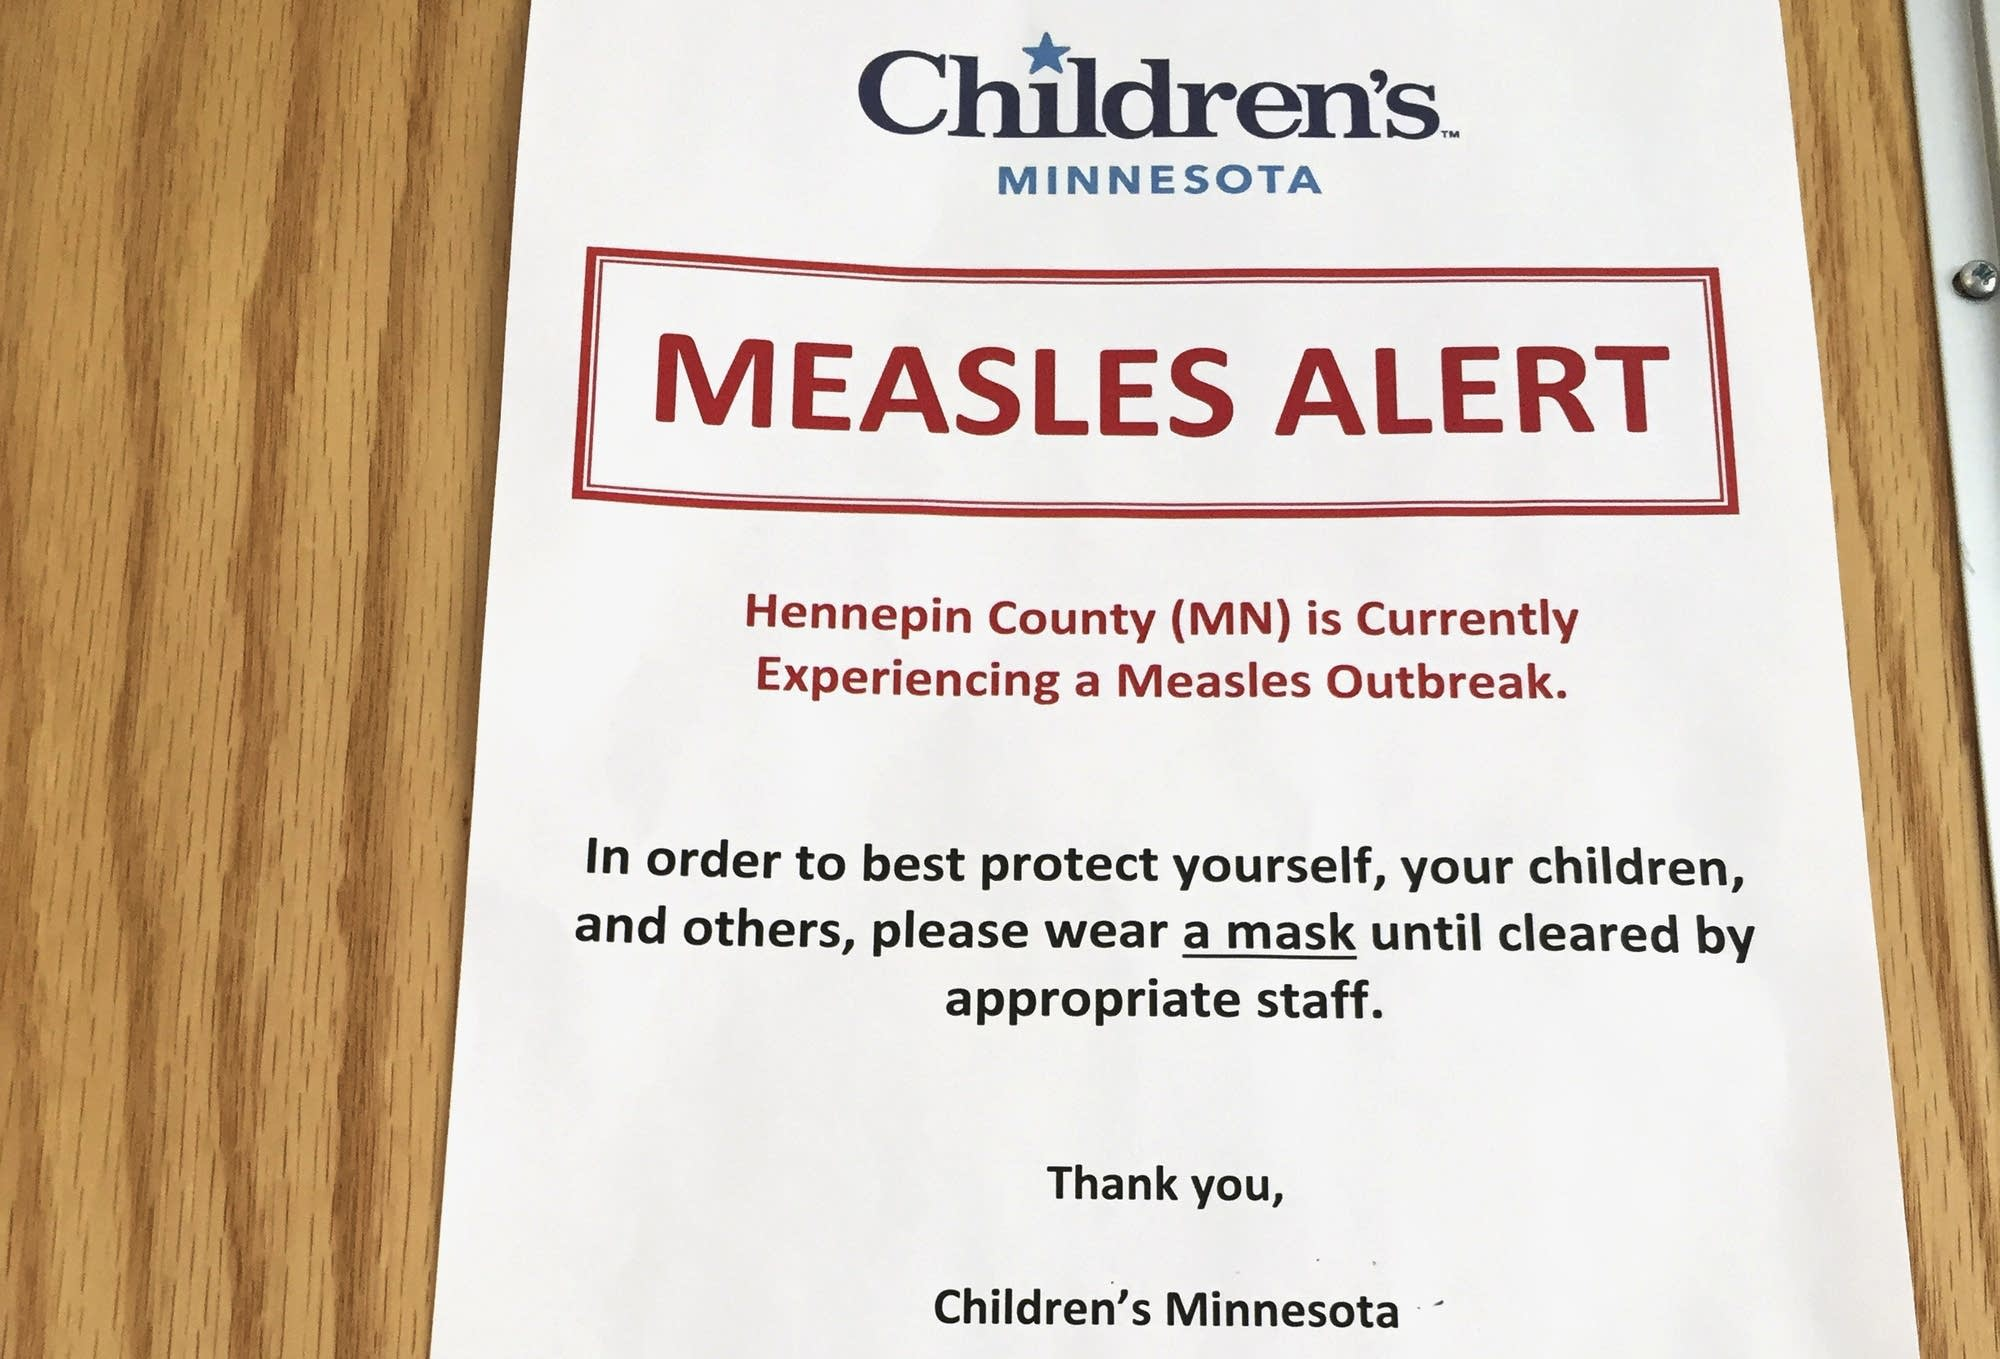 A sign at Children's Minnesota alerts patients to a measles outbreak.